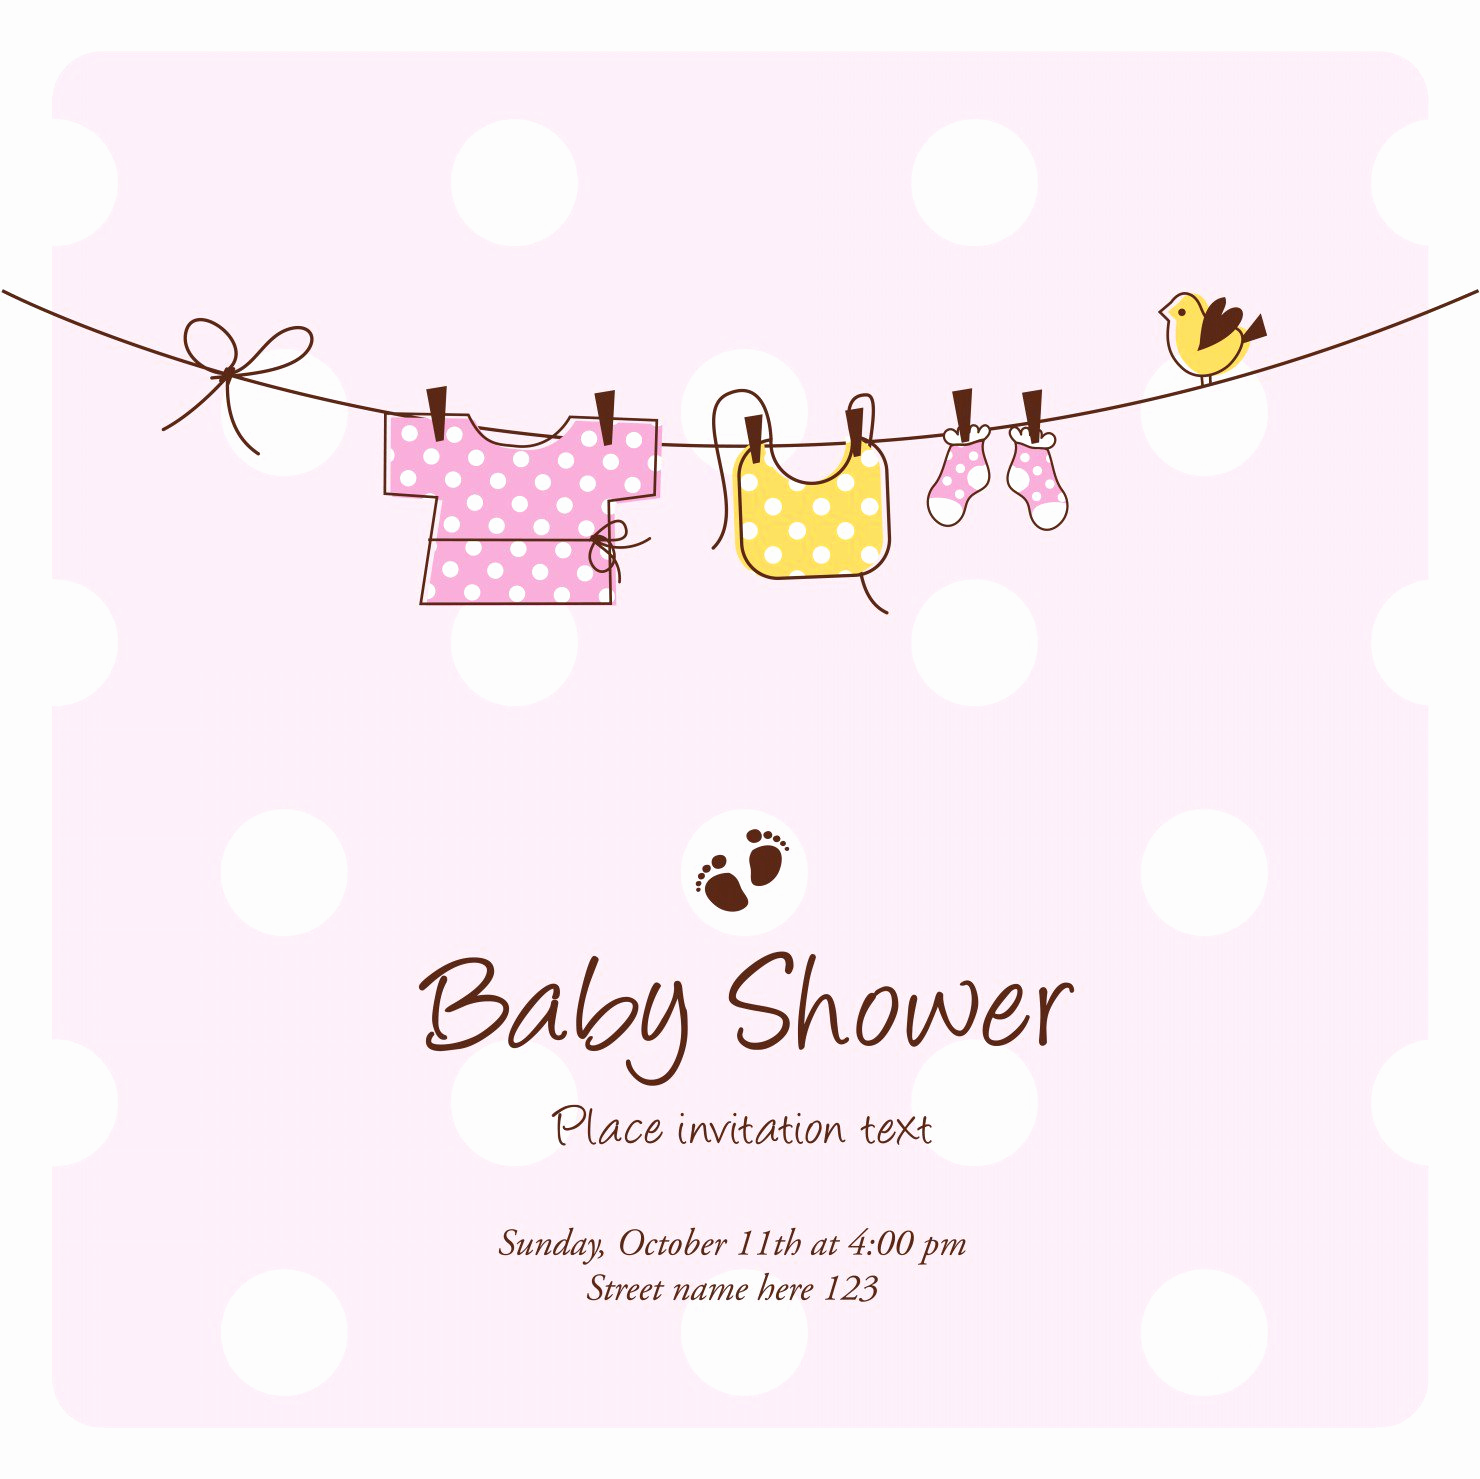 Free Baby Shower Invitation Templates Awesome Invitations Design Inspiration Unique Winter Party